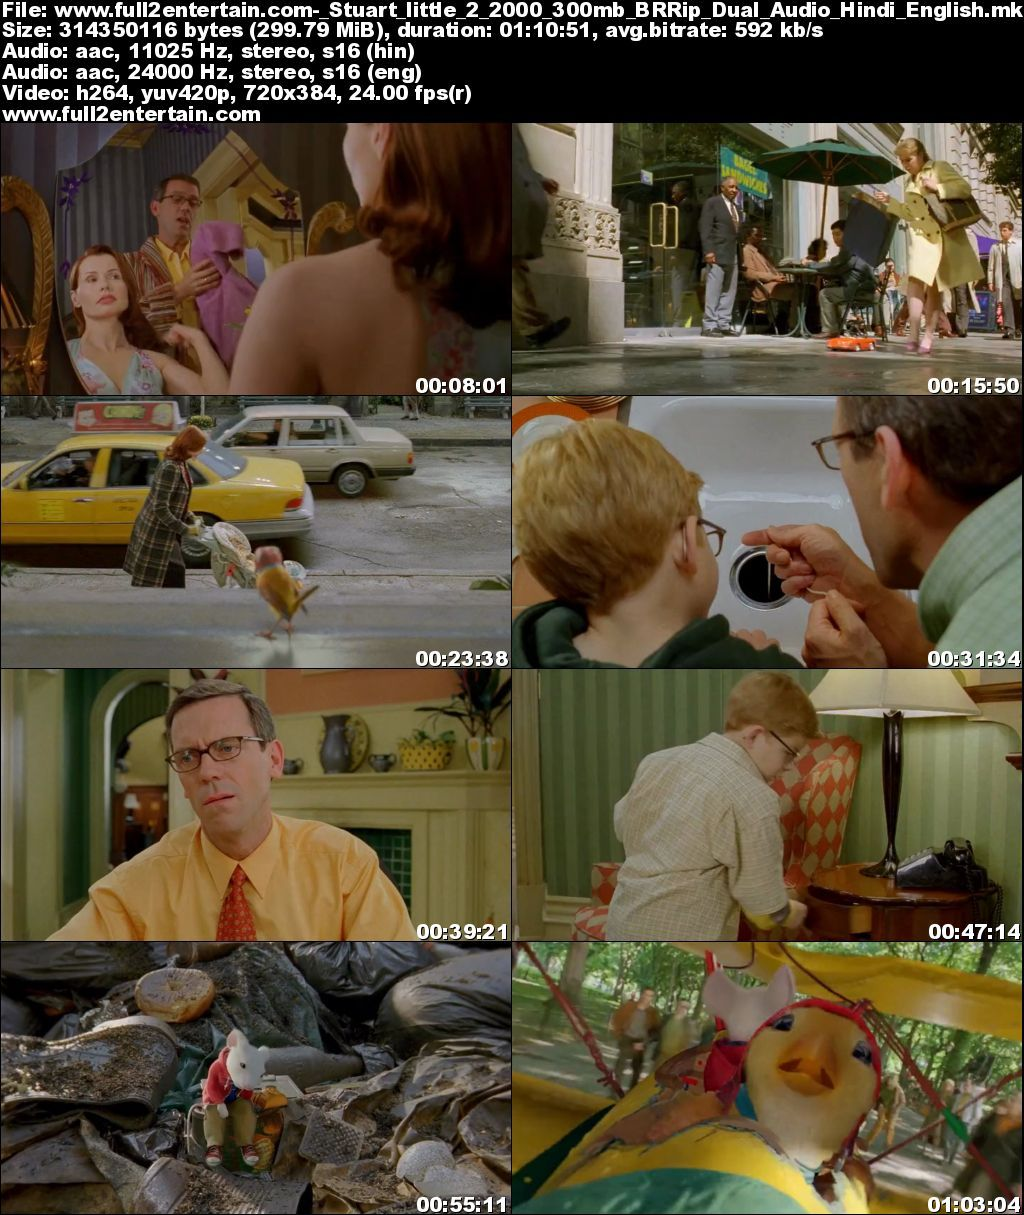 Stuart Little 2 Full Movie Free Download HD 300mb